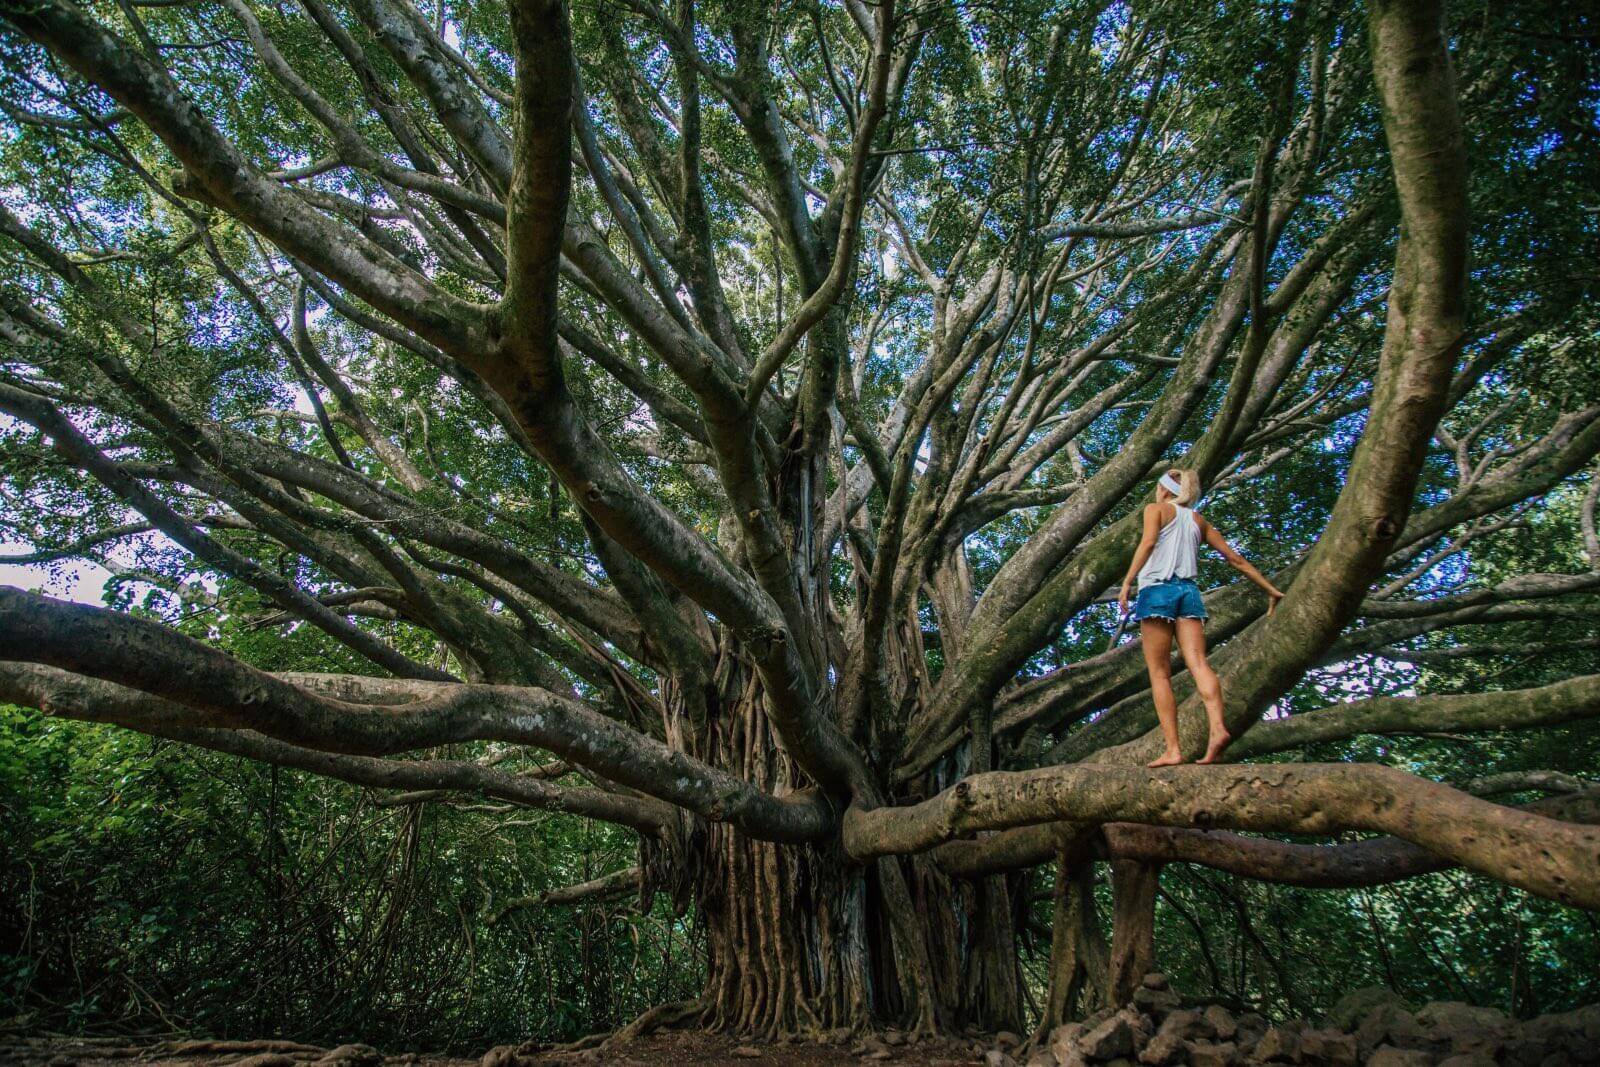 Banyan Tree on the Pipiwai Trail, one of the best hikes on Maui